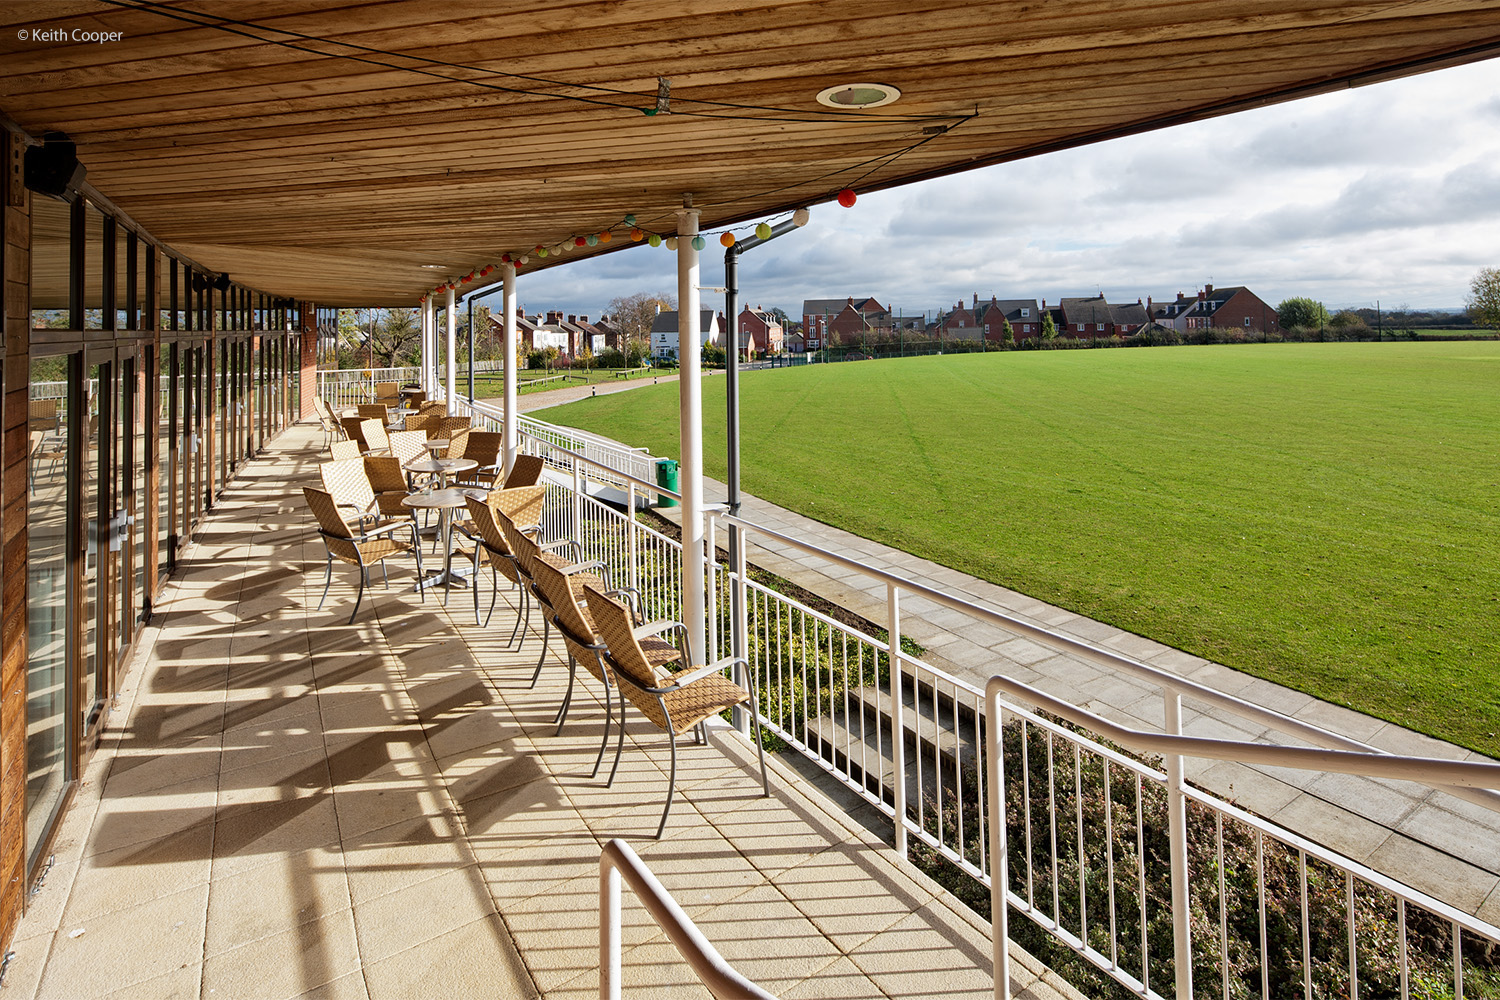 Cricket pavilion viewing area